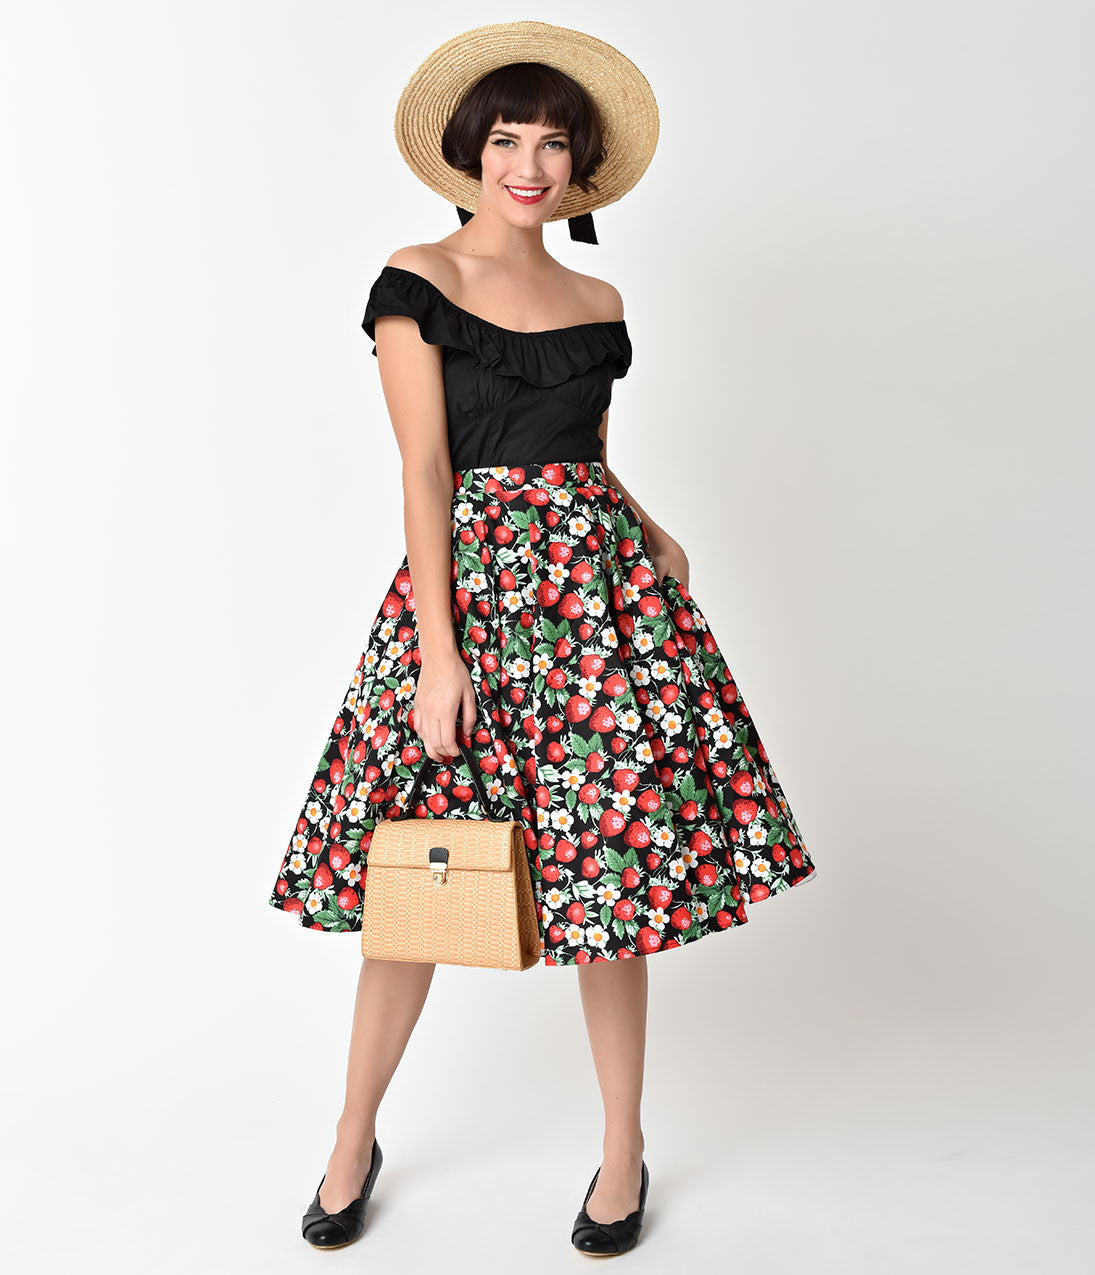 Rockabilly Dresses | Rockabilly Clothing | Viva Las Vegas Hell Bunny Black Strawberry Sundae Rockabilly Swing Skirt $52.00 AT vintagedancer.com